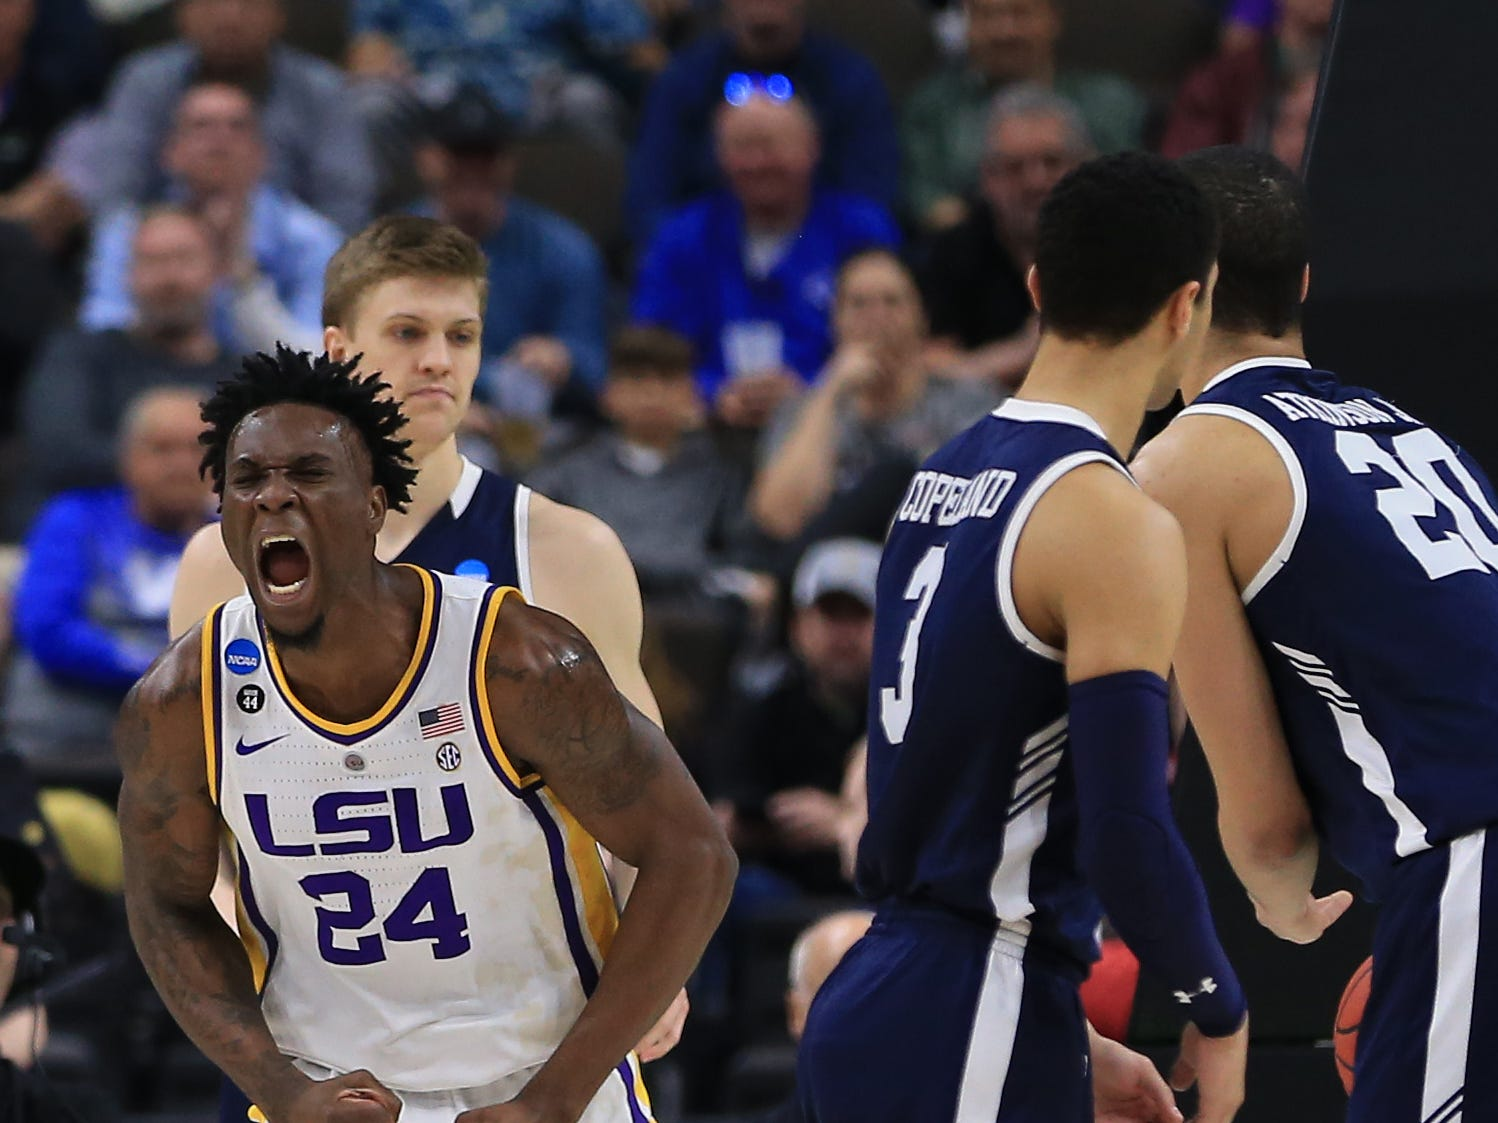 Mar 21, 2019; Jacksonville, FL, USA; LSU Tigers forward Emmitt Williams (24) reacts during the second half against the Yale Bulldogs in the first round of the 2019 NCAA Tournament at Jacksonville Veterans Memorial Arena. Mandatory Credit: Matt Stamey-USA TODAY Sports